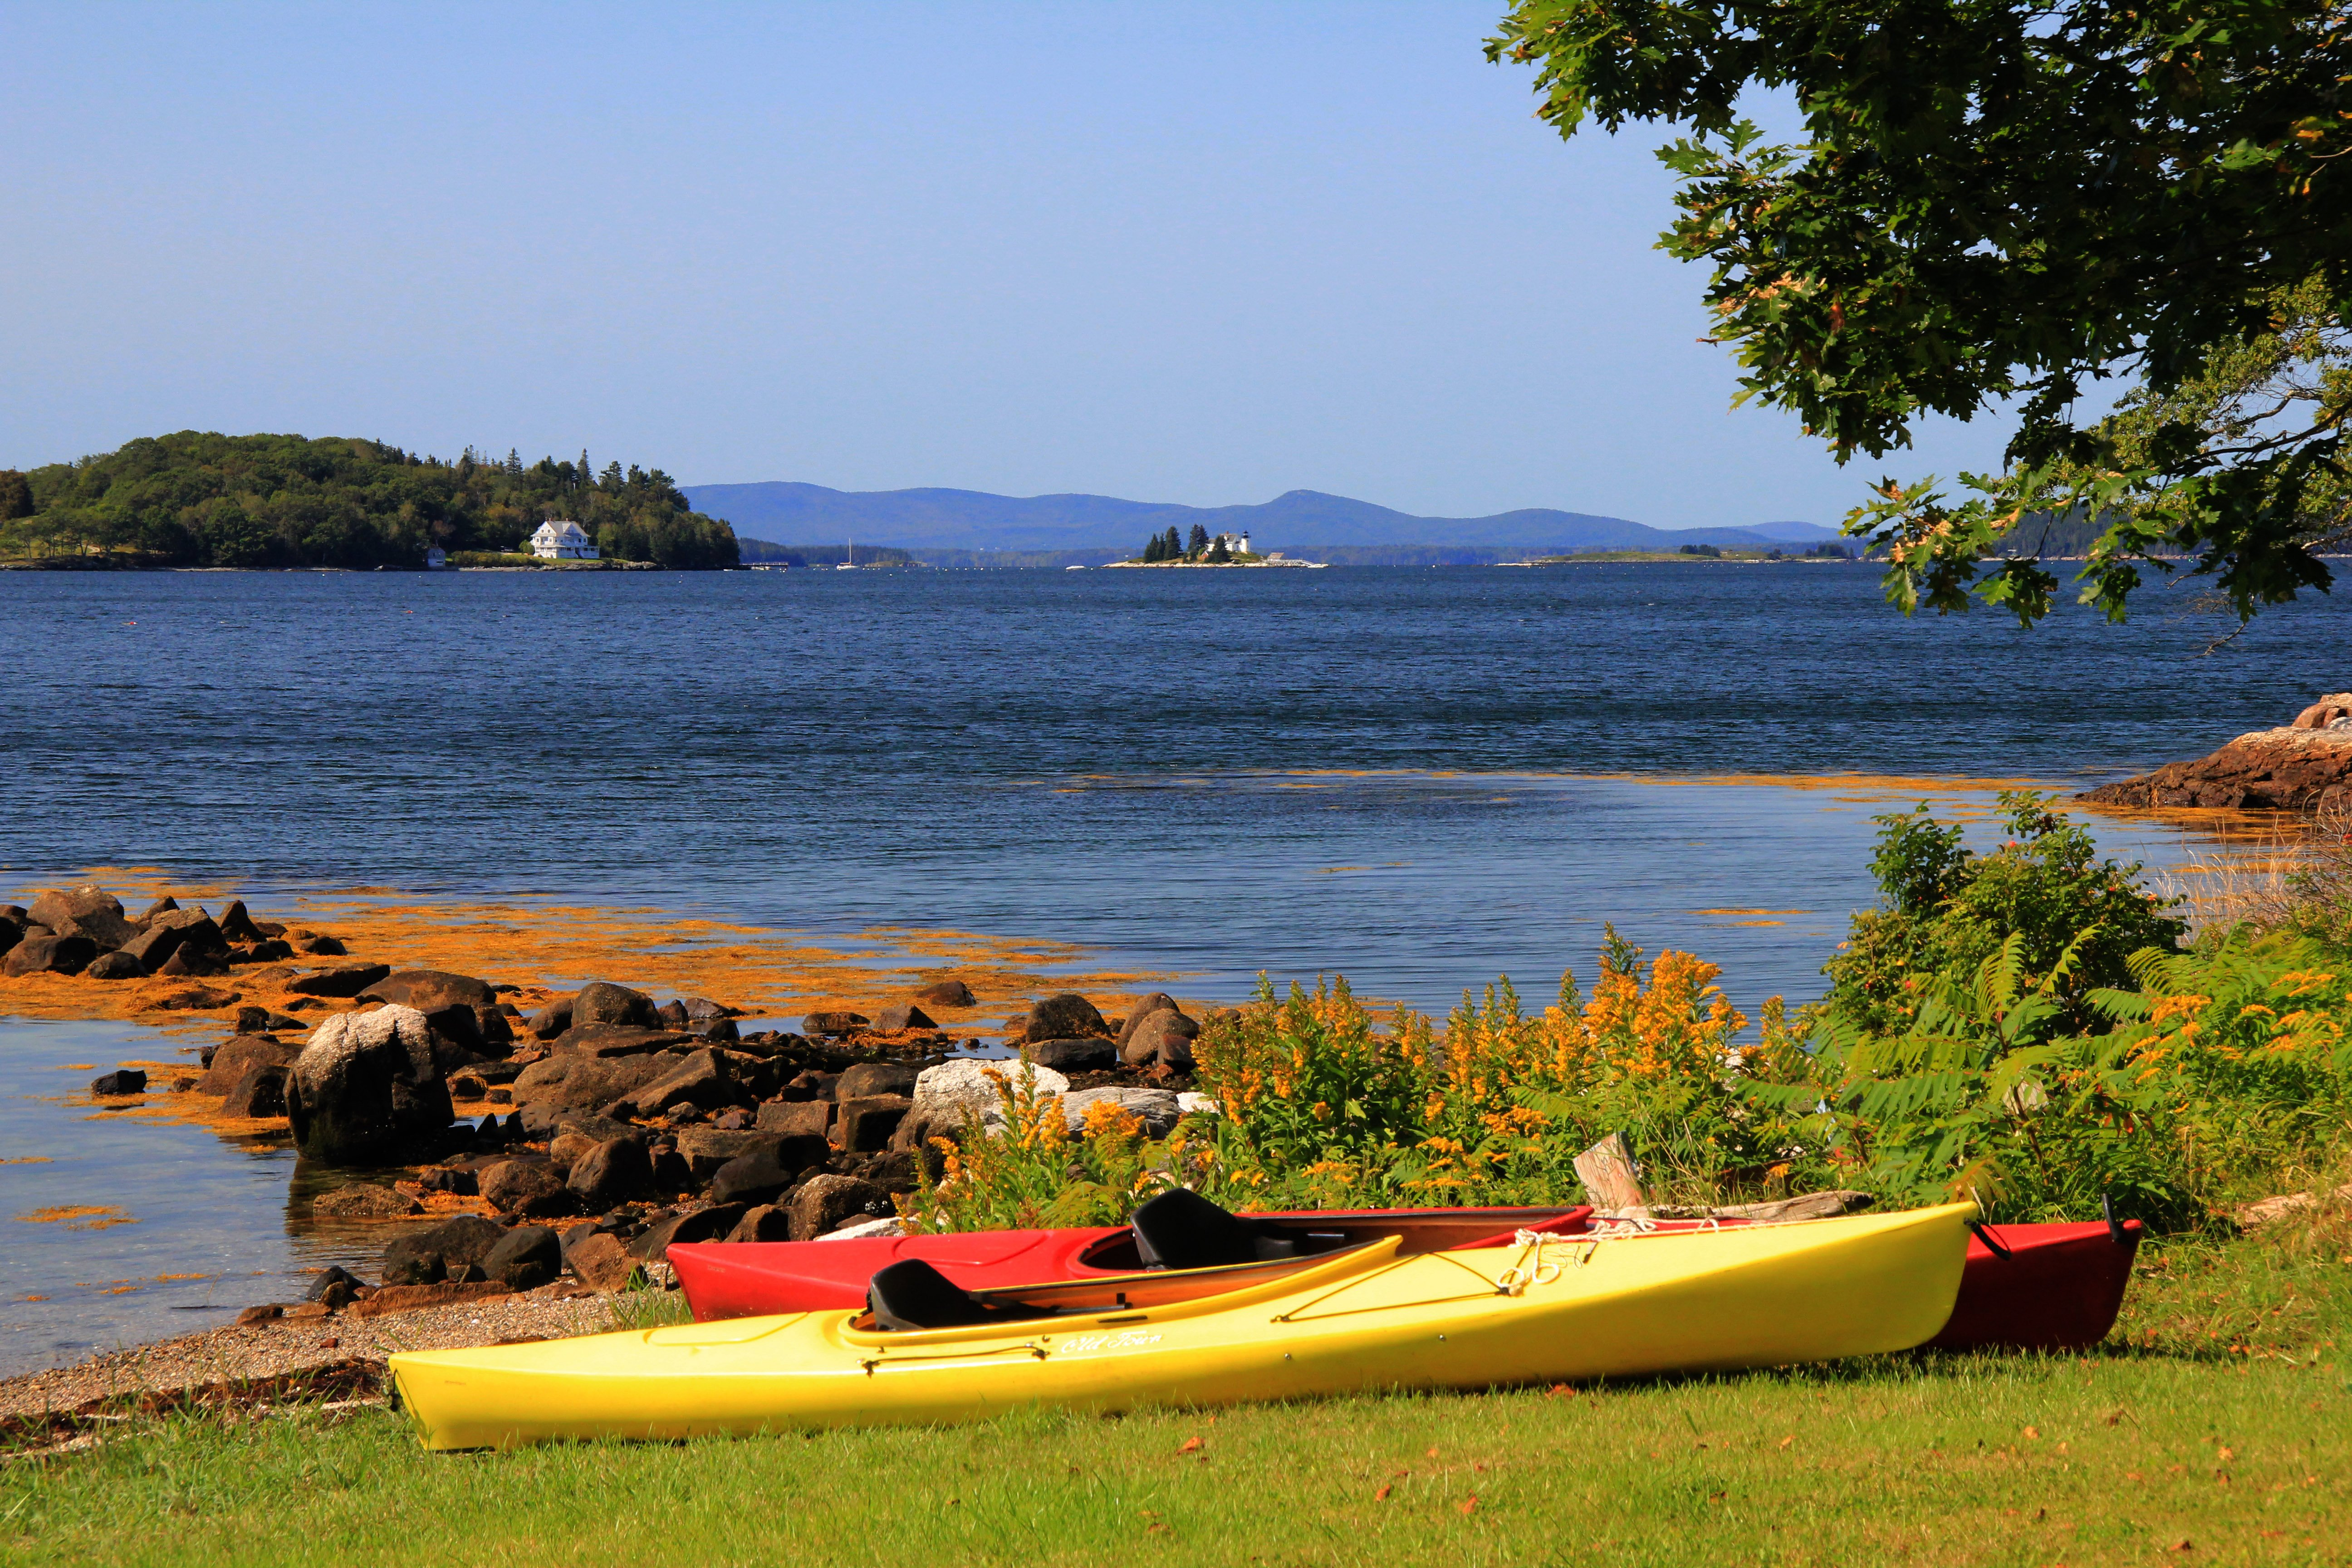 You can bring your own kayak or rent one locally and have it delivered right to our shorefront. This is Herricks Landing which is on our 60 acre property on the shore of East Penobscot Bay.